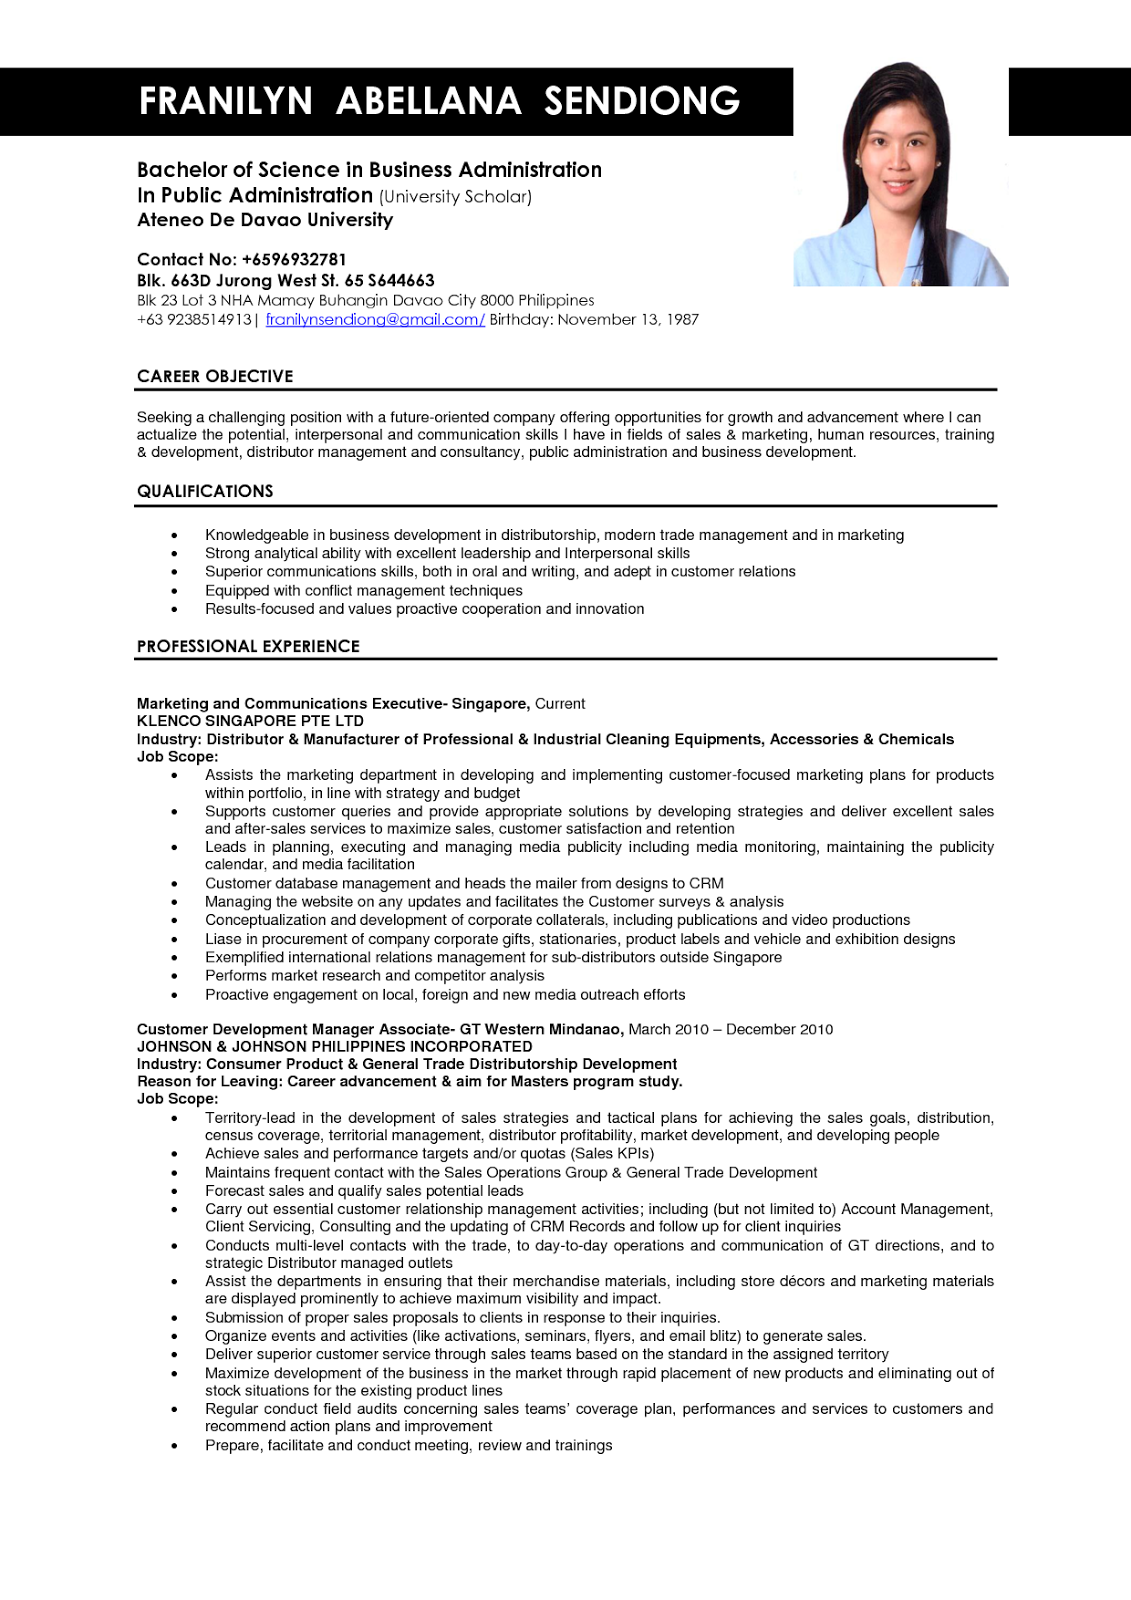 Public Administration Resume Resume Sample